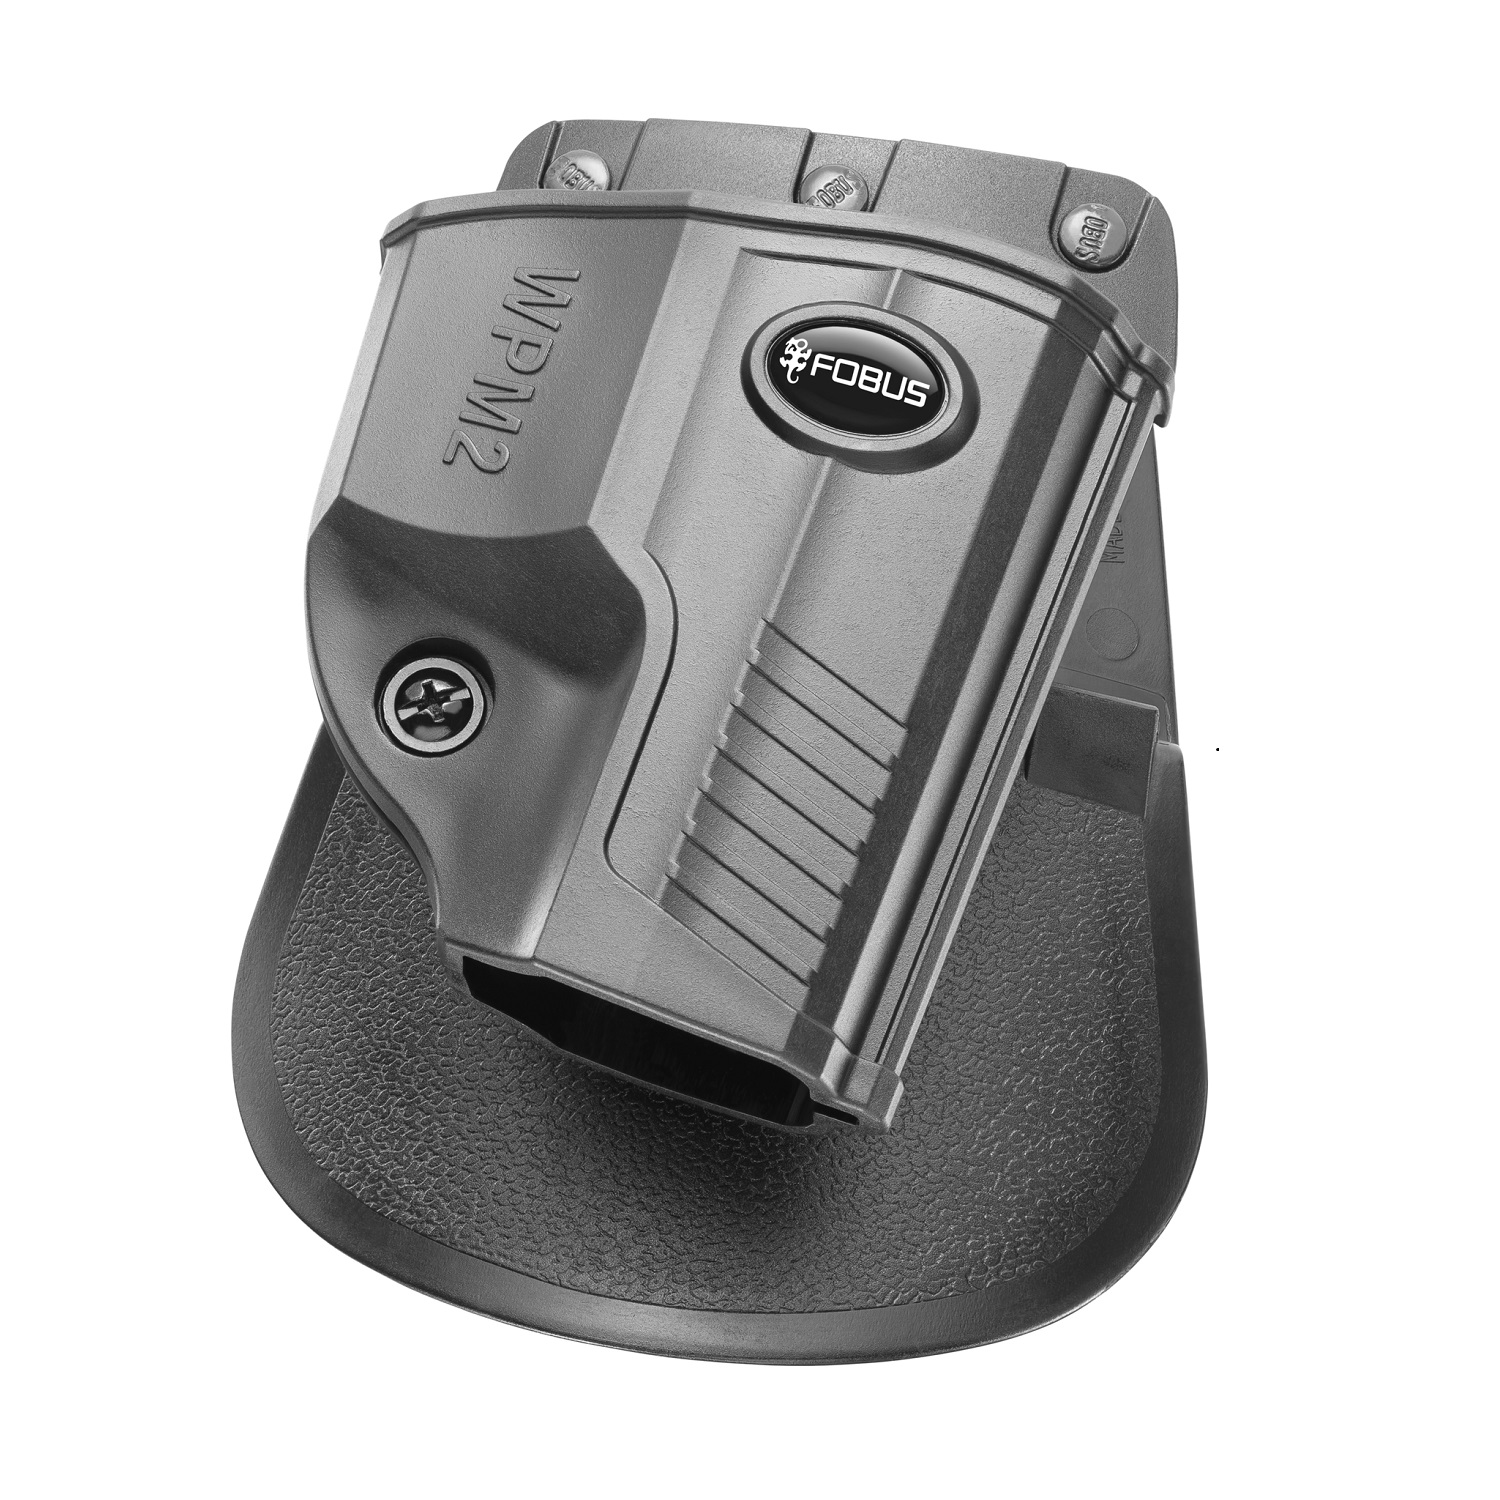 Fobus Evolution Paddle Holster-Walther PPSM2 9mm by Fobus Holsters